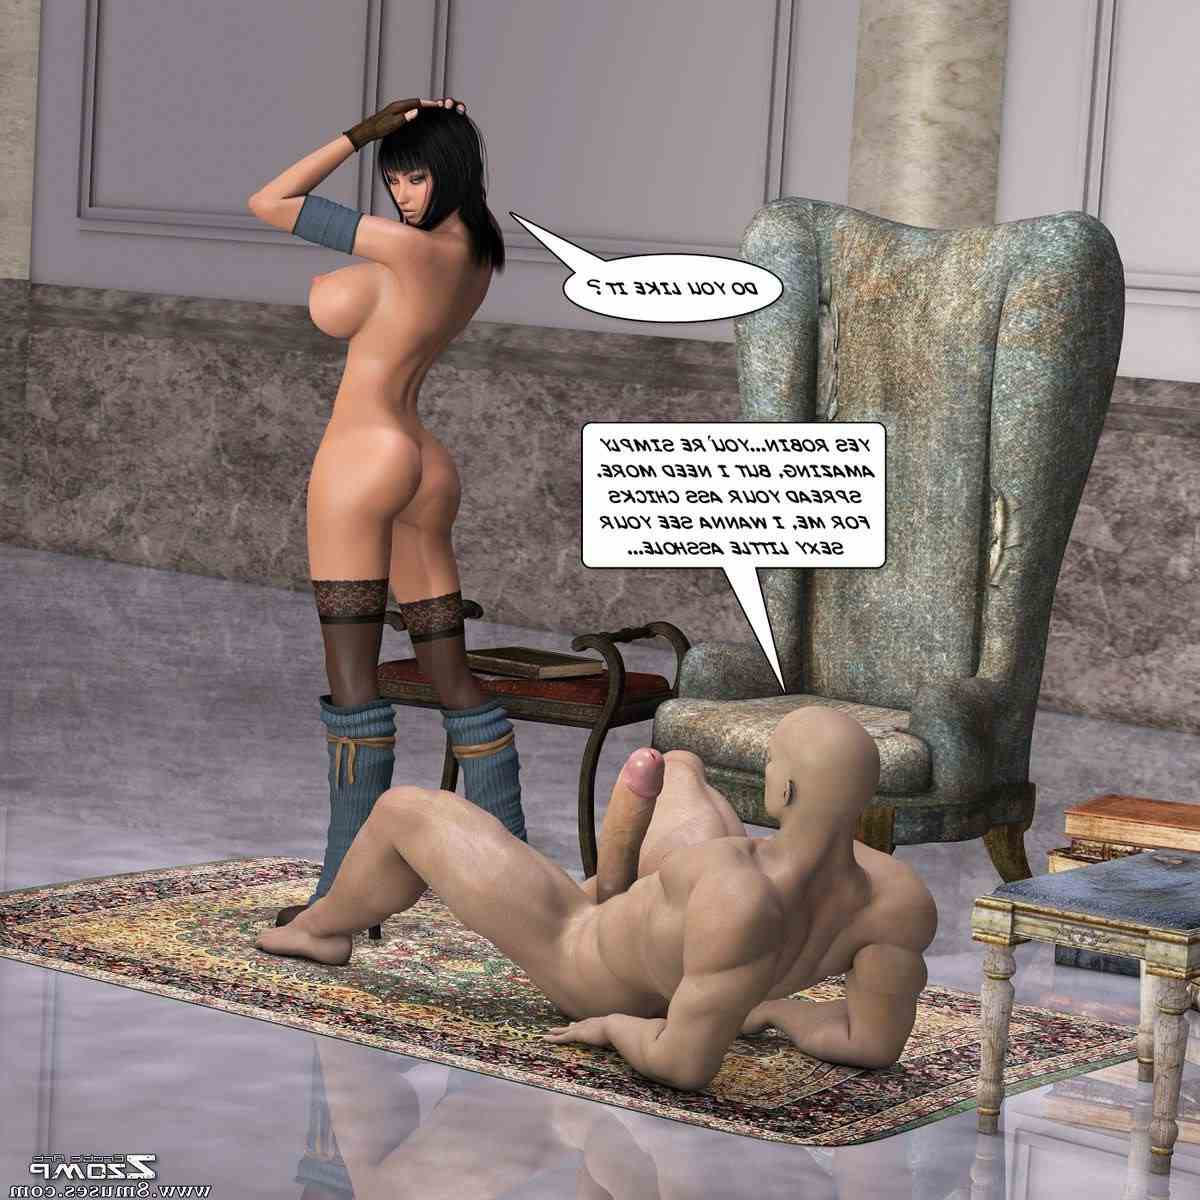 ZZomp-Comics/The-Private-Show The_Private_Show__8muses_-_Sex_and_Porn_Comics_9.jpg